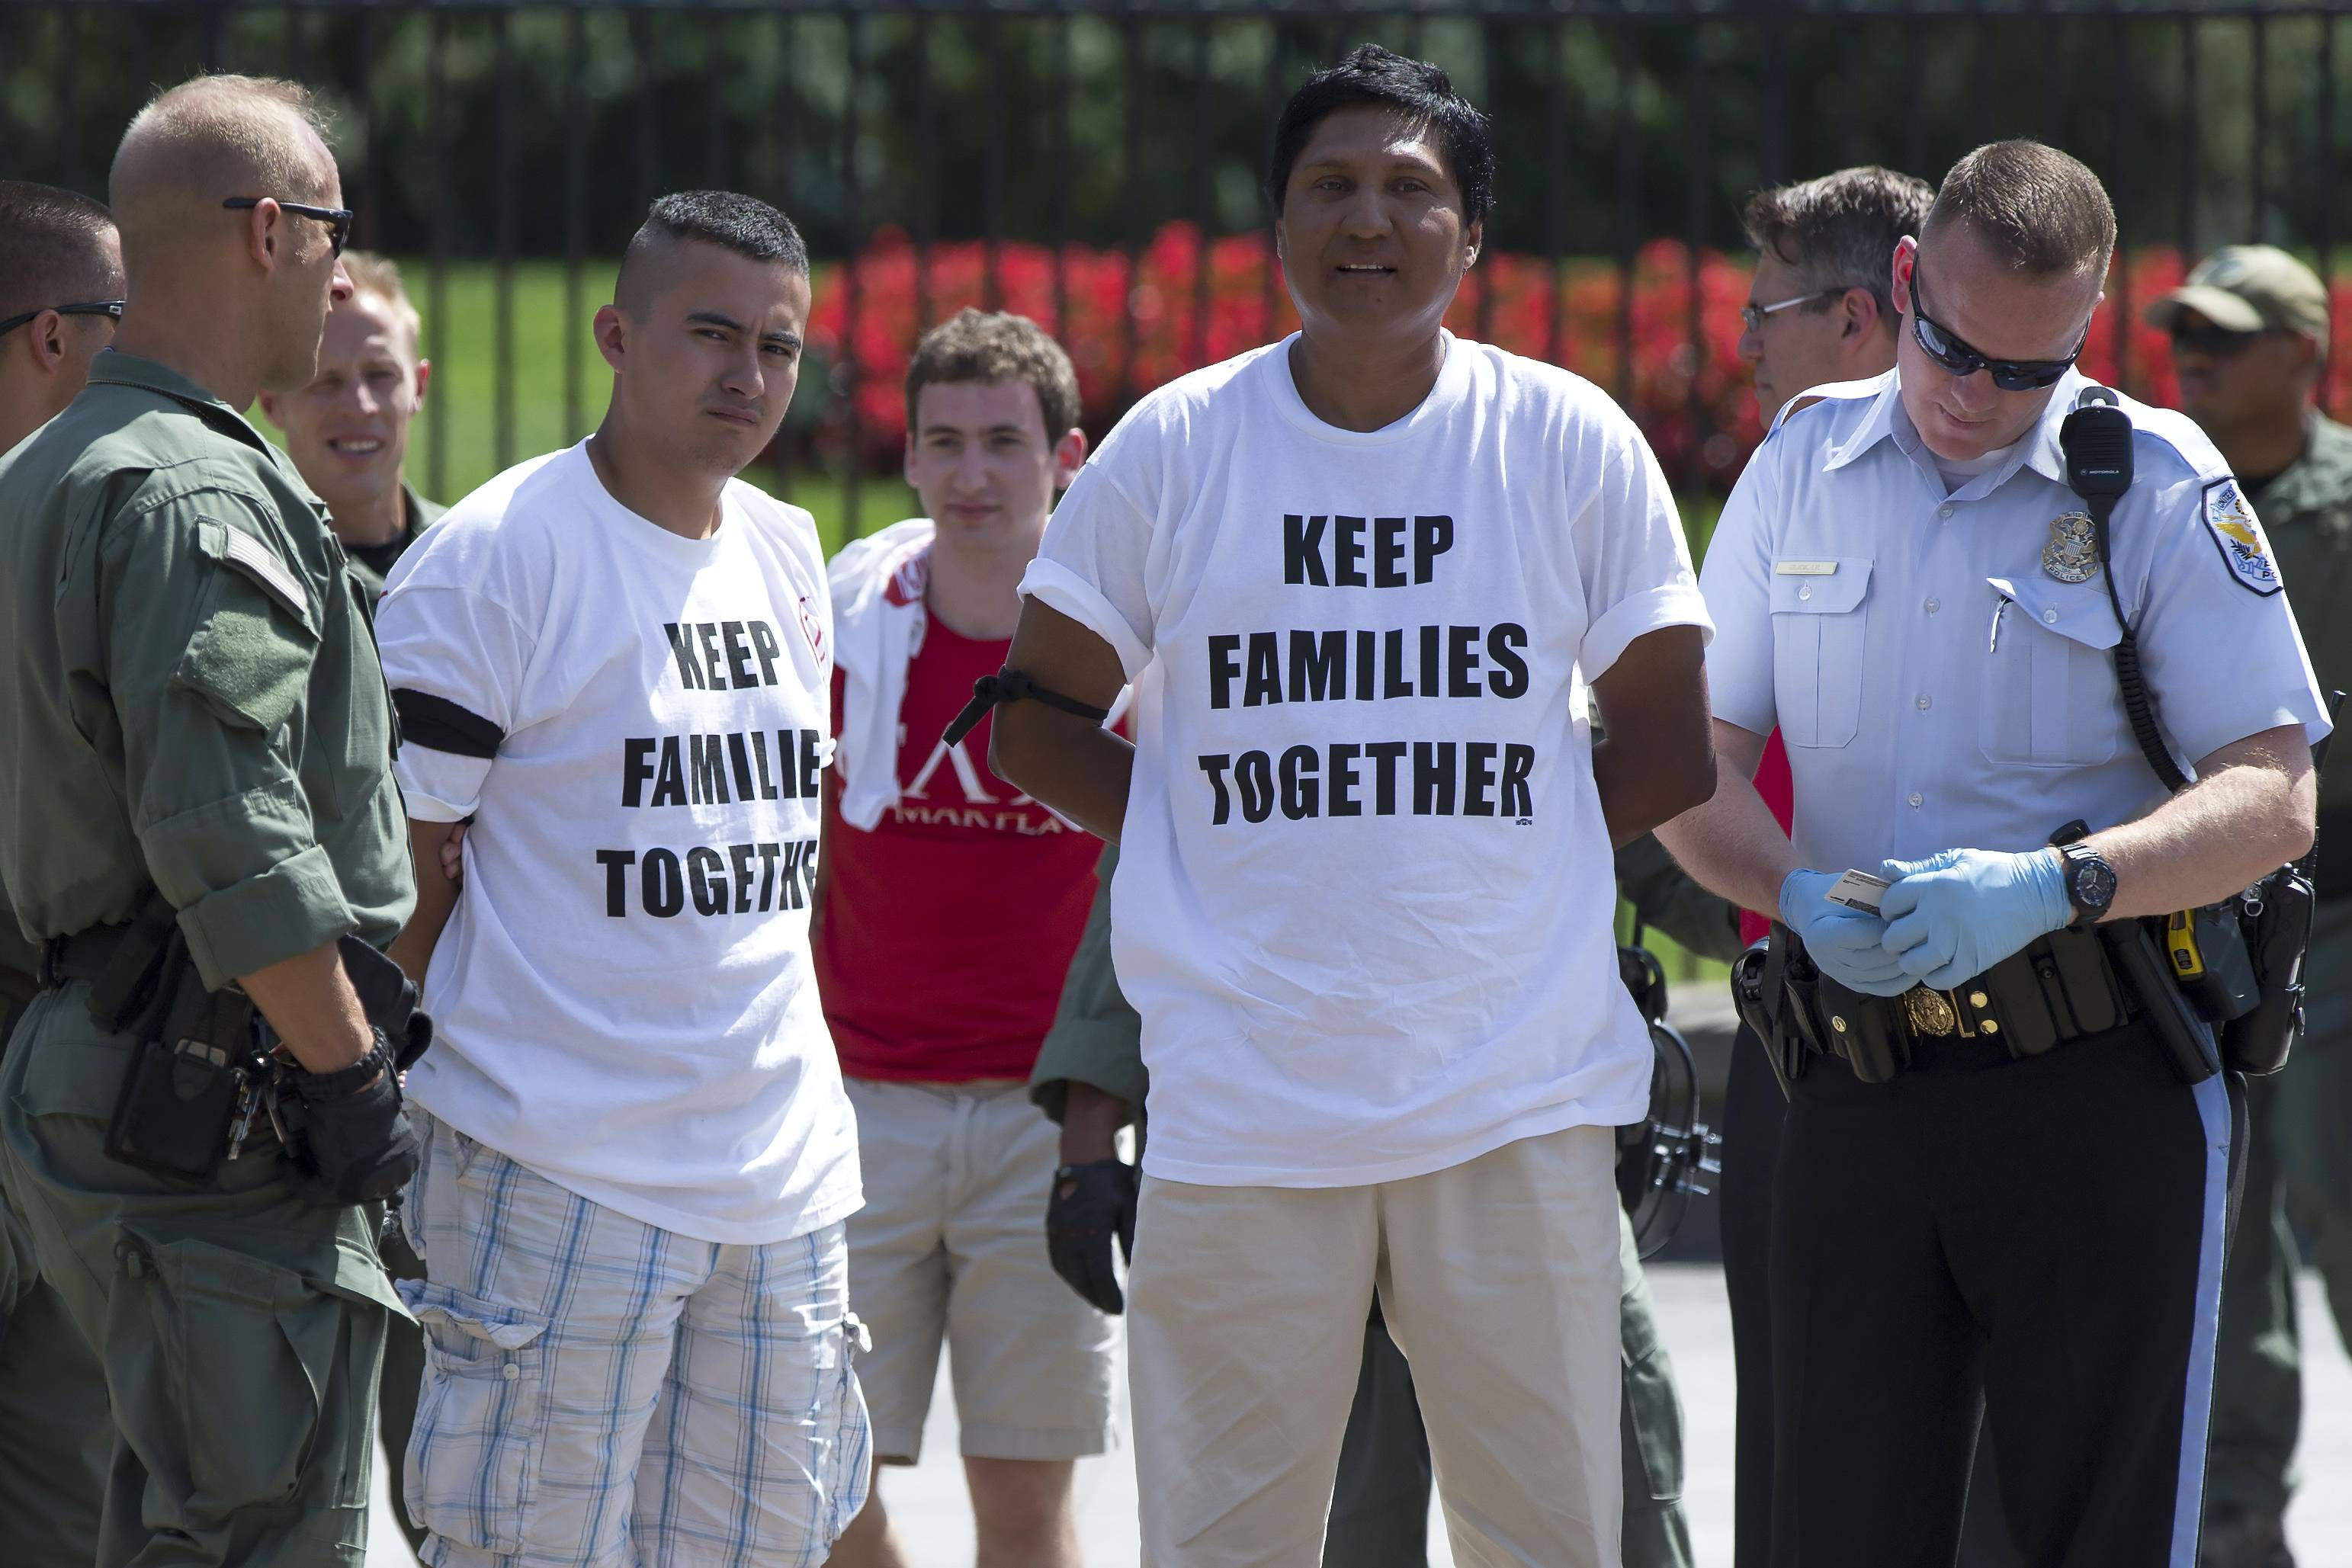 Obama sets no timeline for action on immigration